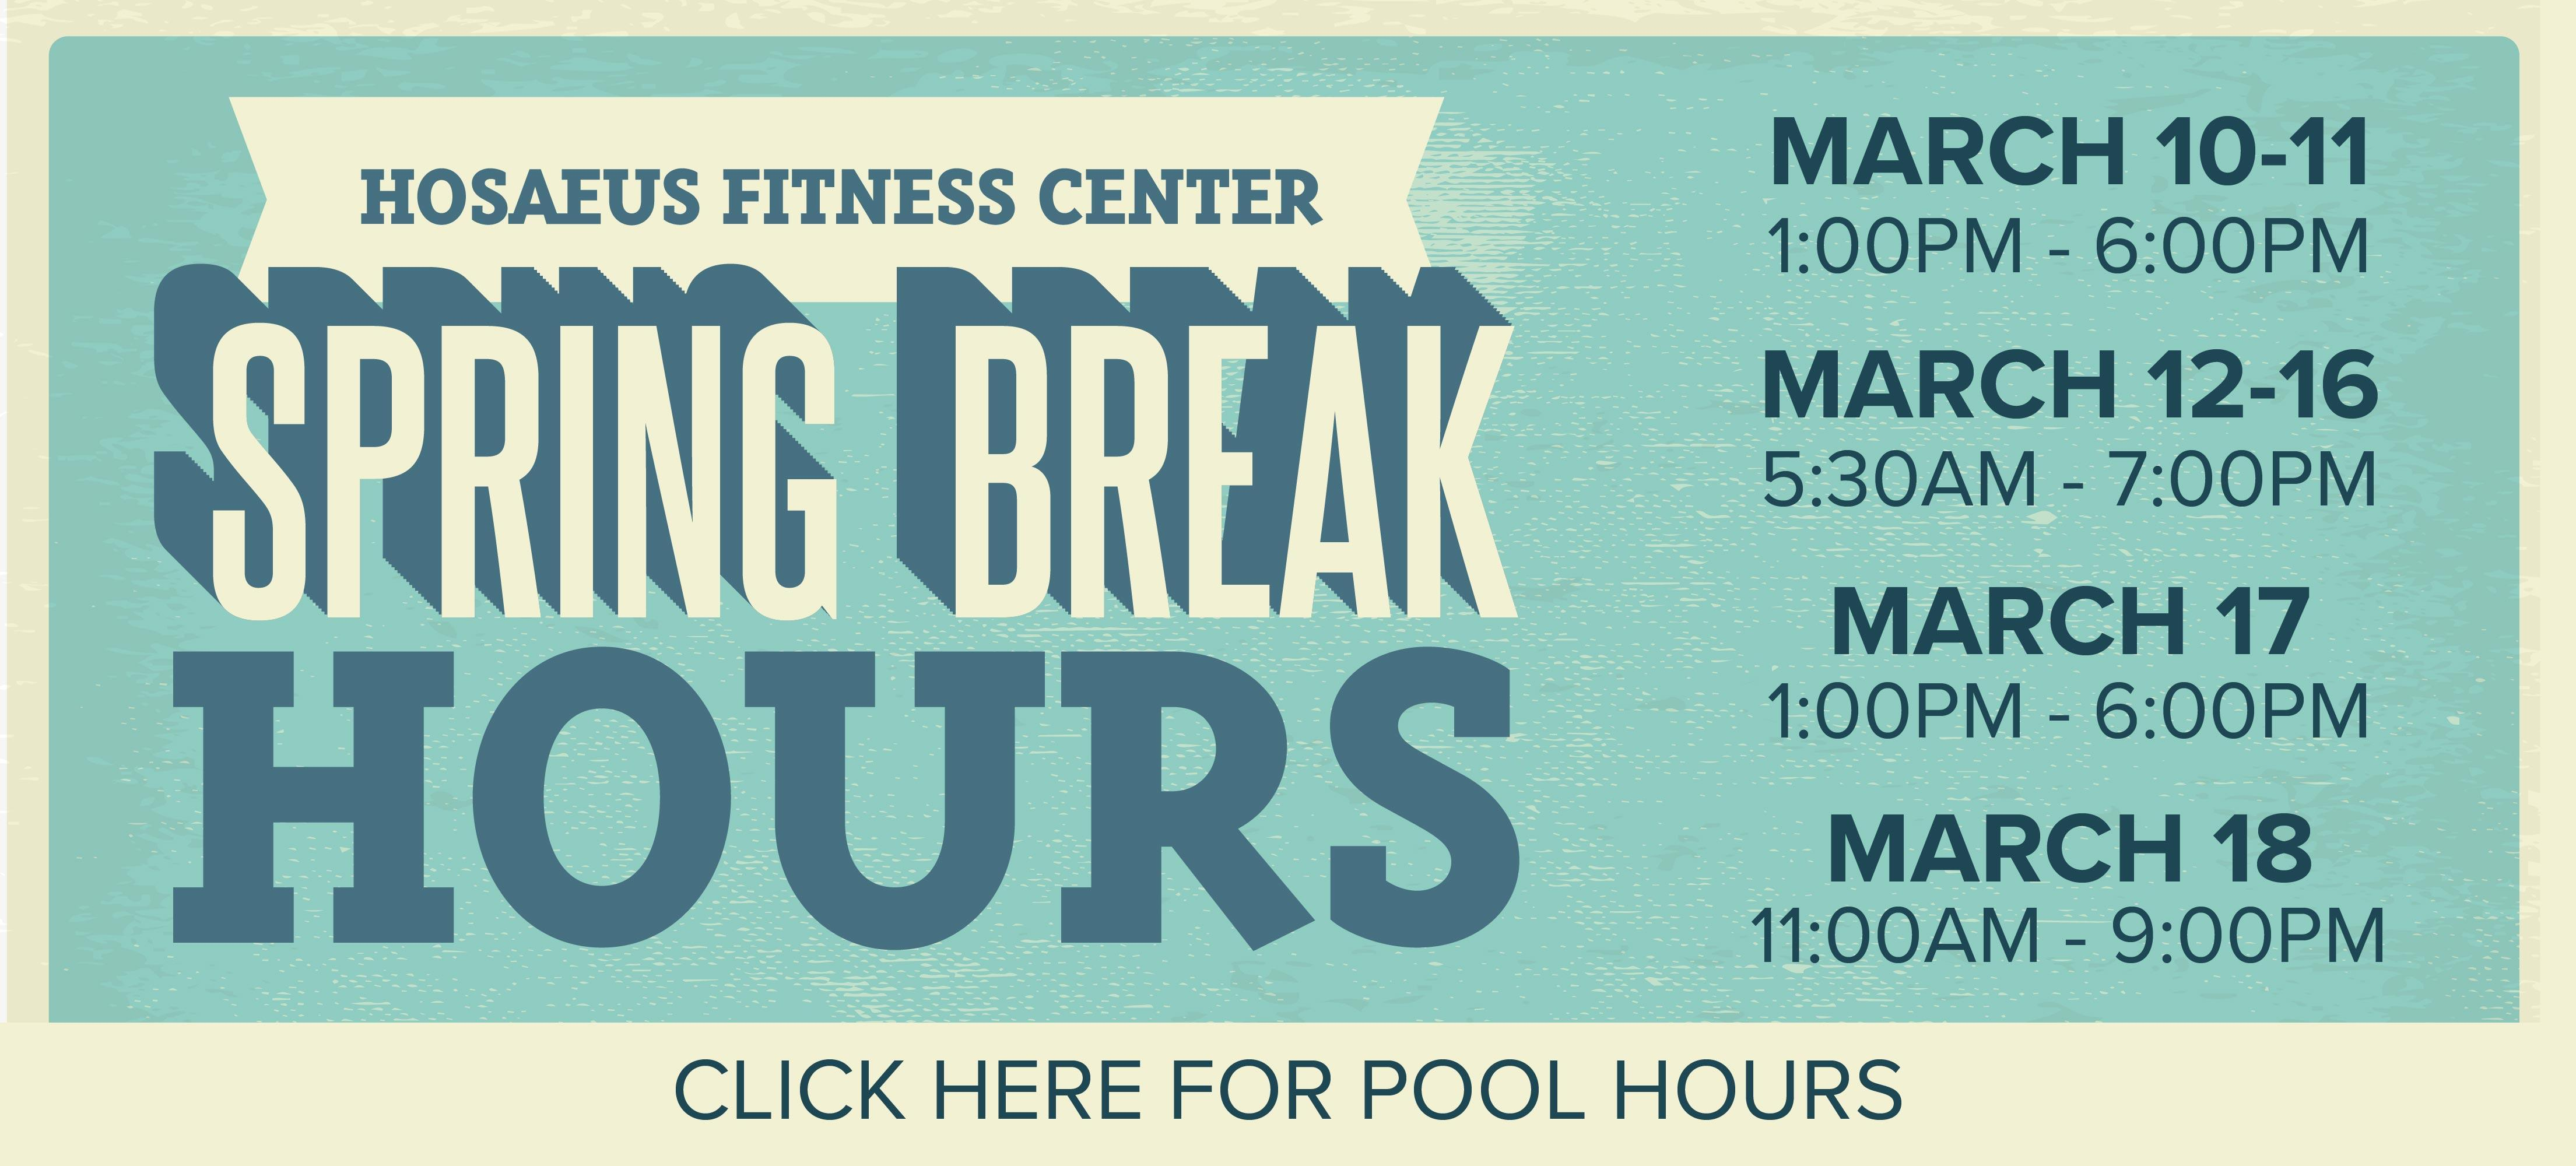 Please call 406-994-5000 for the facility and pool schedule. There will be no GX classes for the week.